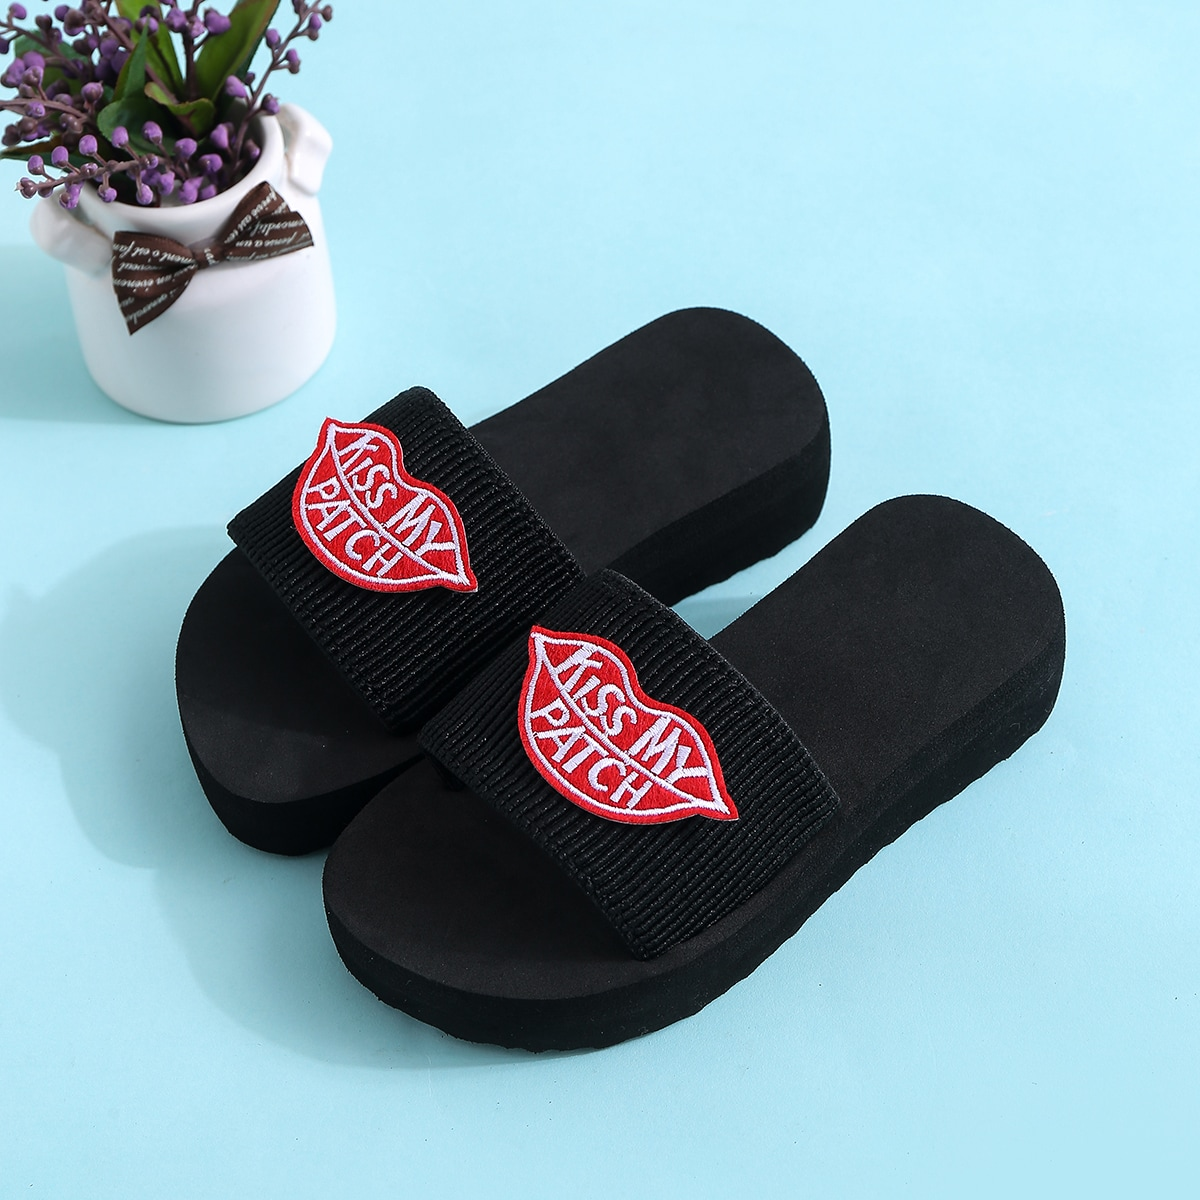 SHEIN / Toddler Girls Lip Patch Slippers